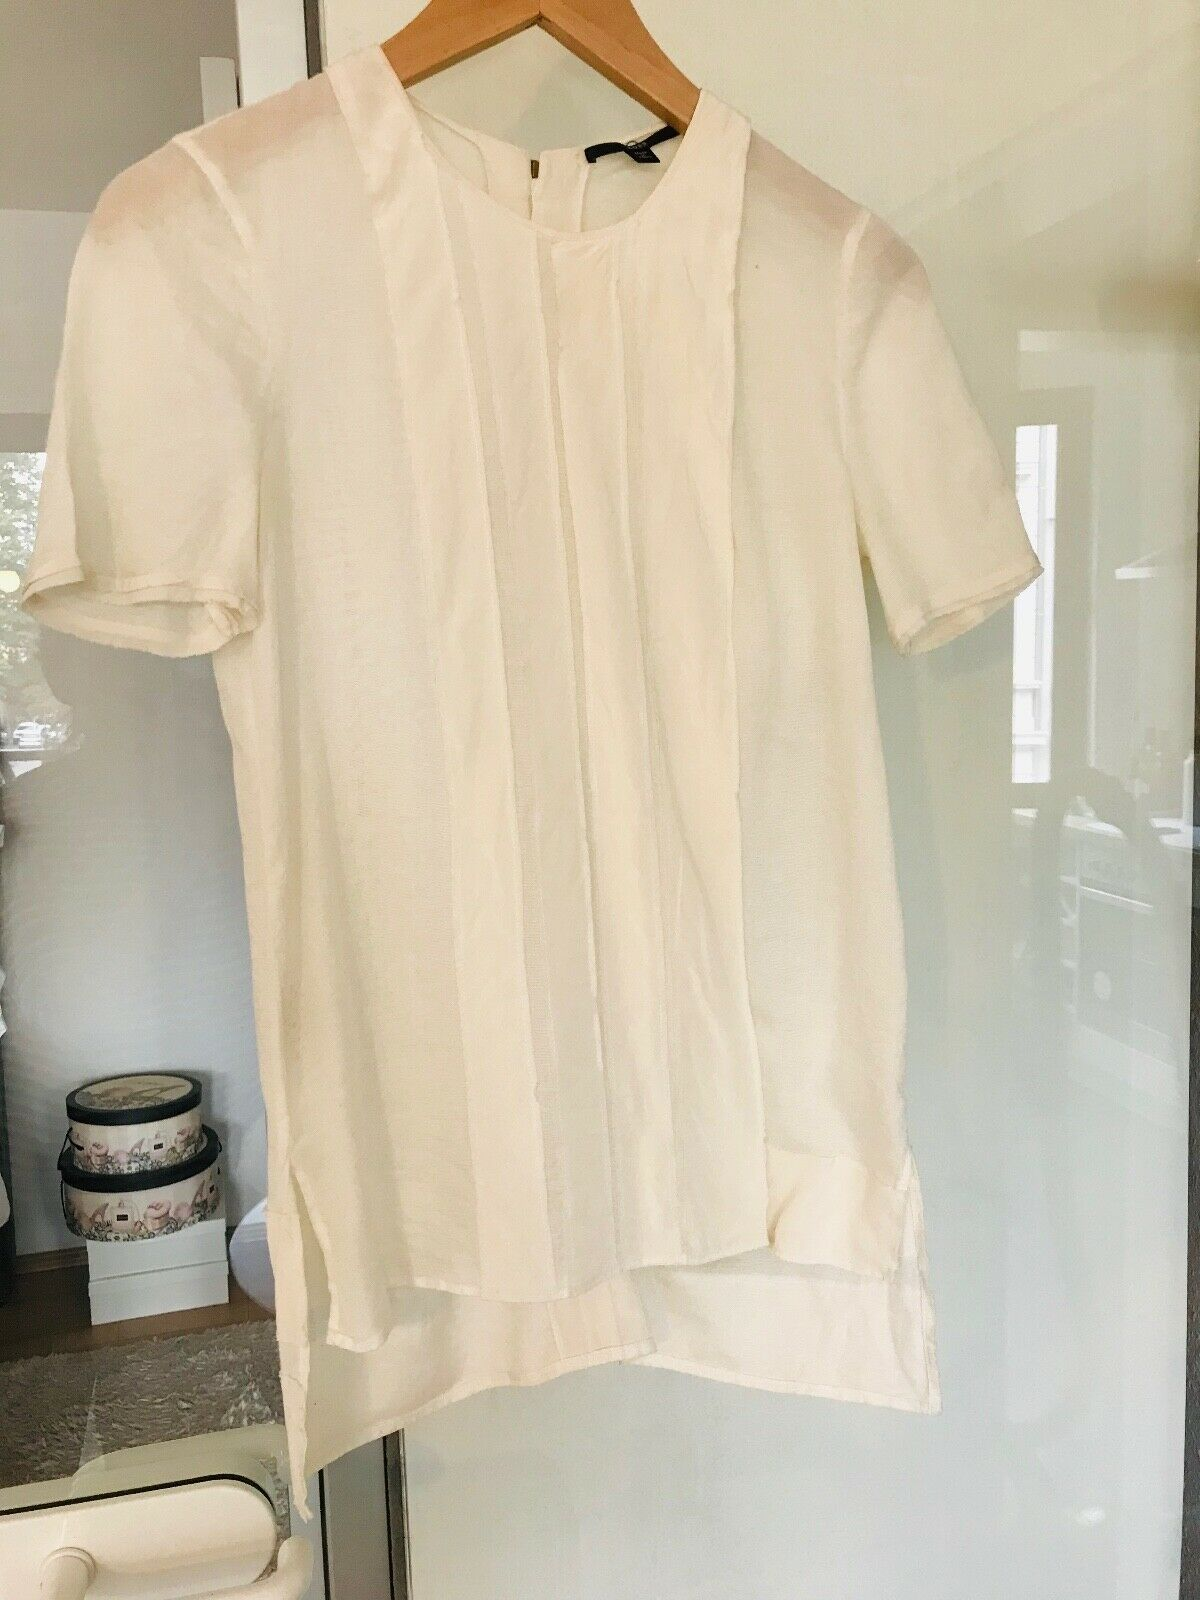 Boss T-Shirt Top  Blause weiß Gr. 36 Hugo Boss Neu mit Etikett